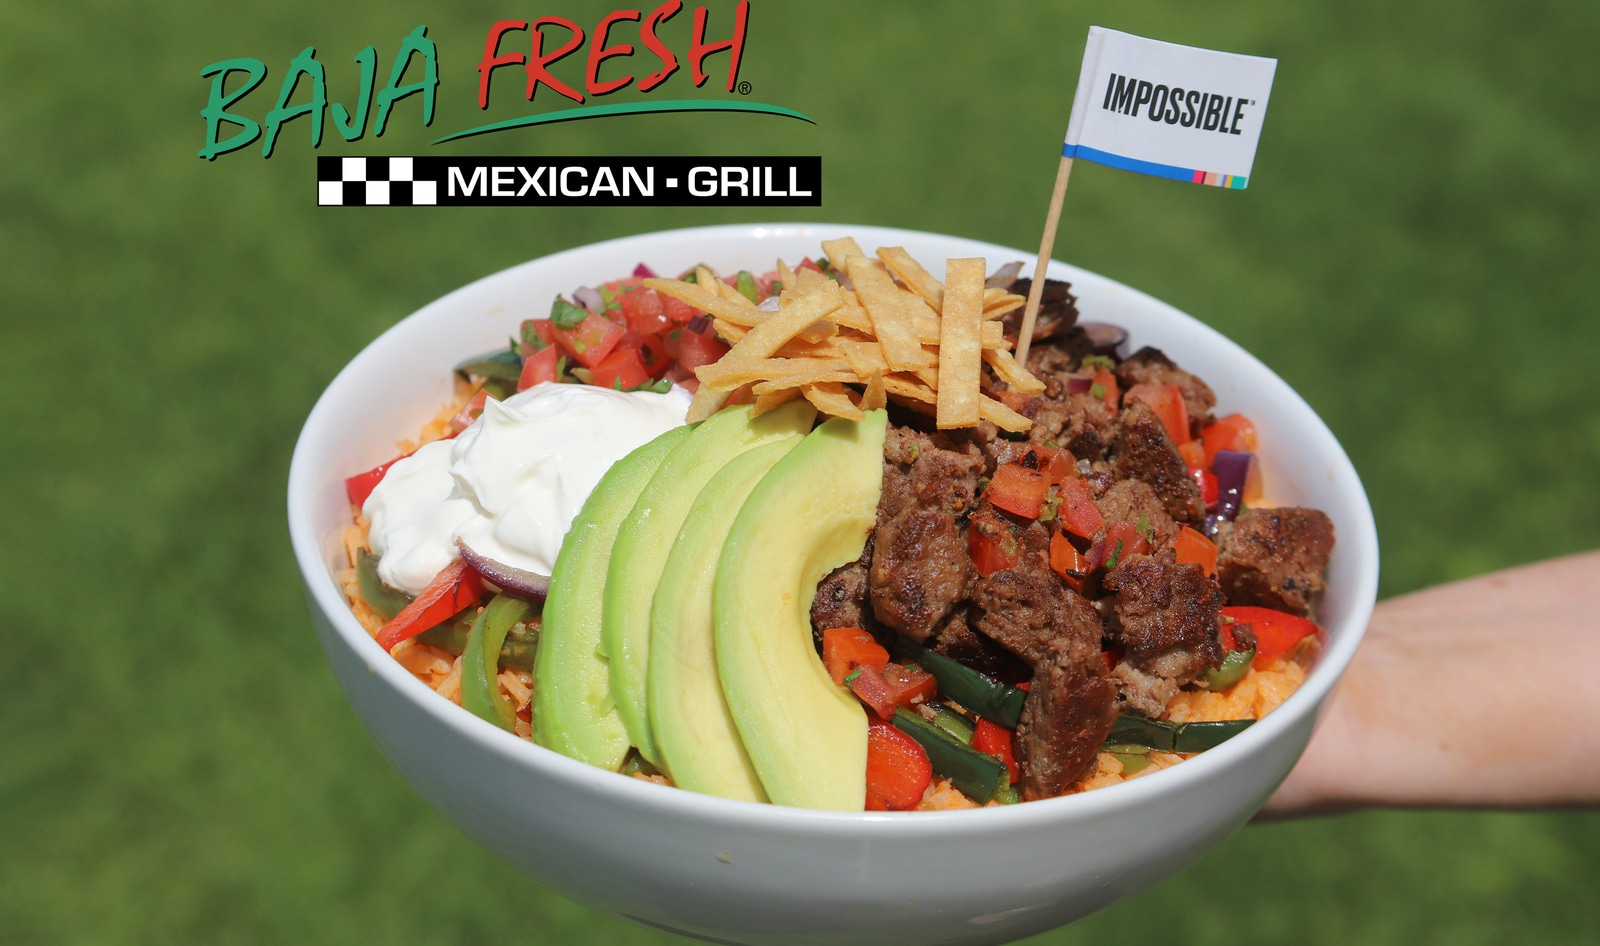 Meatless Impossible Tacos, Burritos, and Bowls Come to 80 Baja Fresh Locations